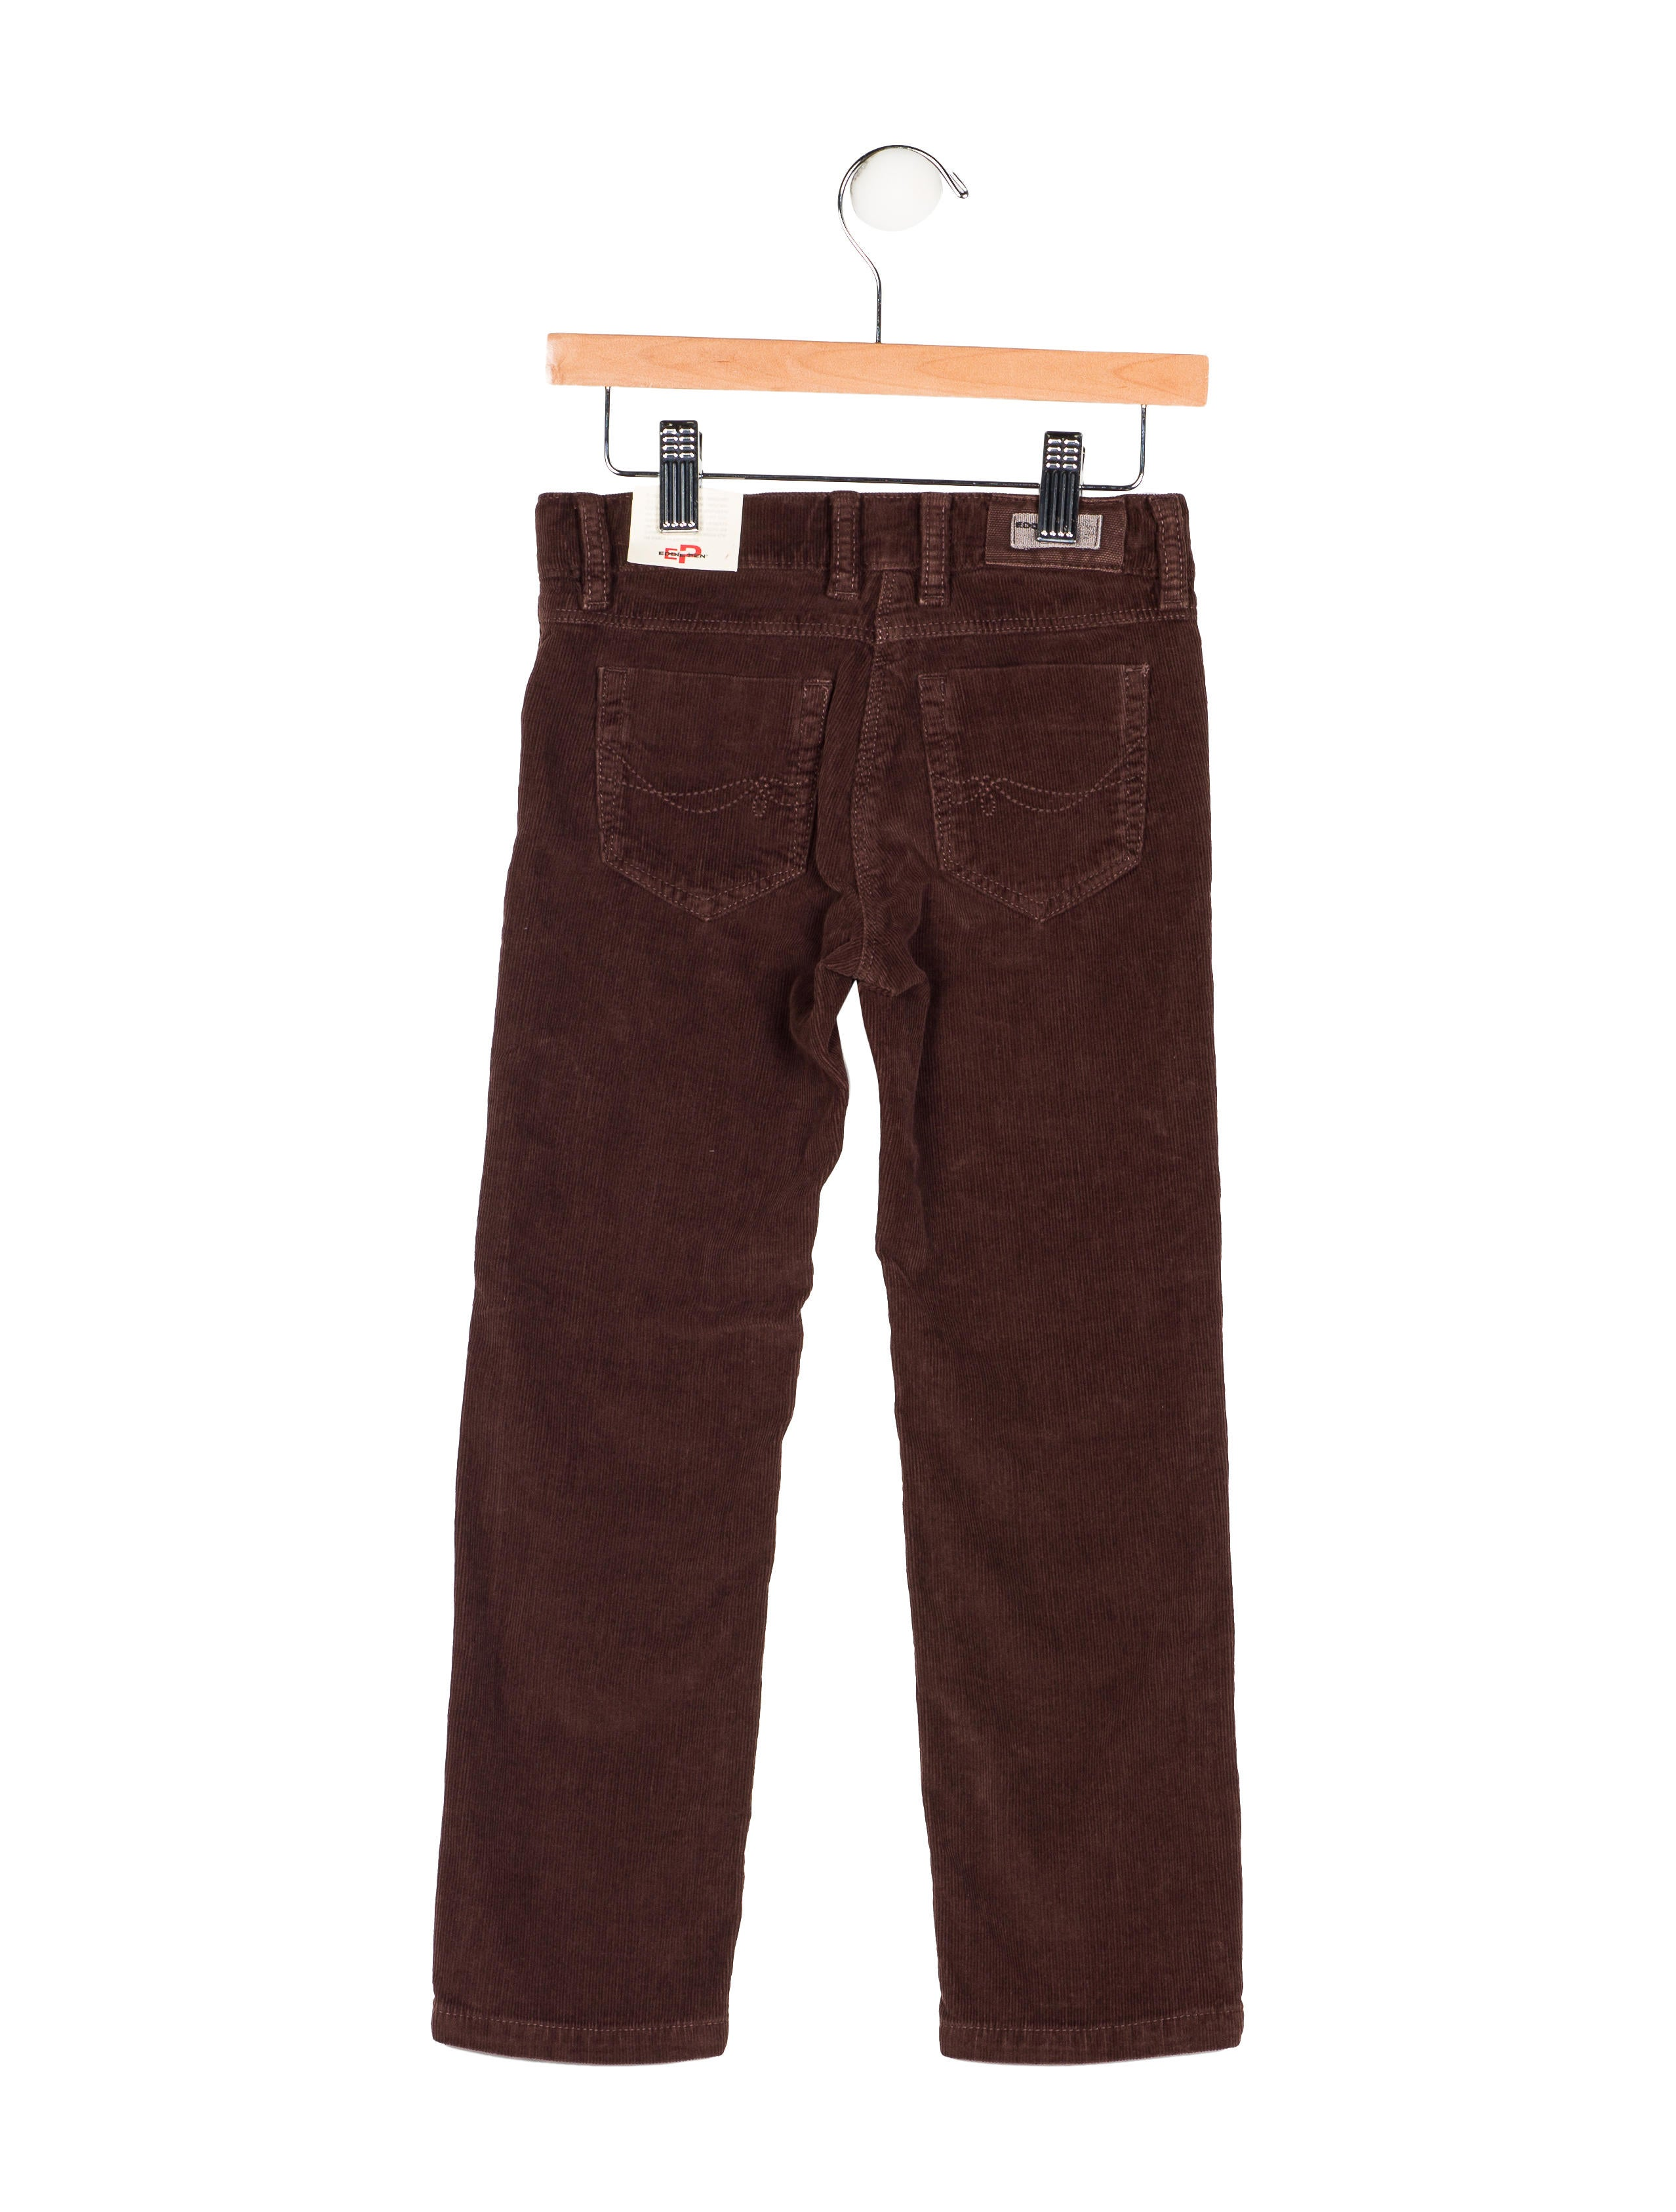 Find girls pants and jeans at Gymboree and shop a great selection of styles. Shop New Arrivals & Fun Styles · Head-To-Toe Looks · Mix 'n' Match Styles · New Summer ArrivalsStyles: Tops & Tees, Sleepwear, Dresses, Skirts, Shoes, Jeans.